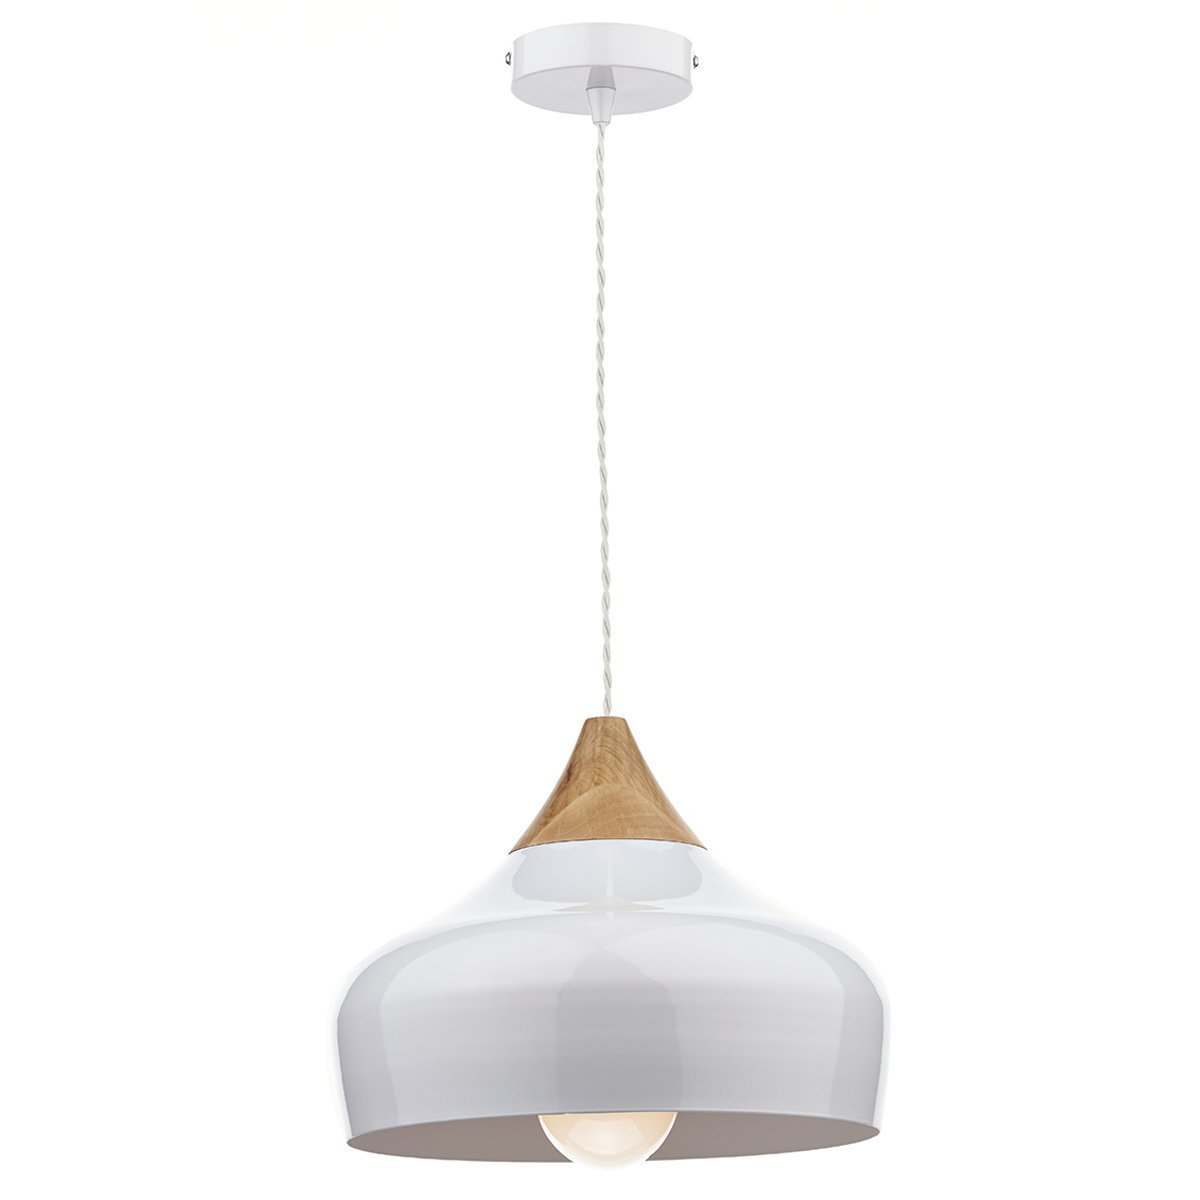 4daa30390932 Dar Lighting Gaucho Single Light Ceiling Pendant in a White Finish with Wood  Detail: Amazon.co.uk: Lighting